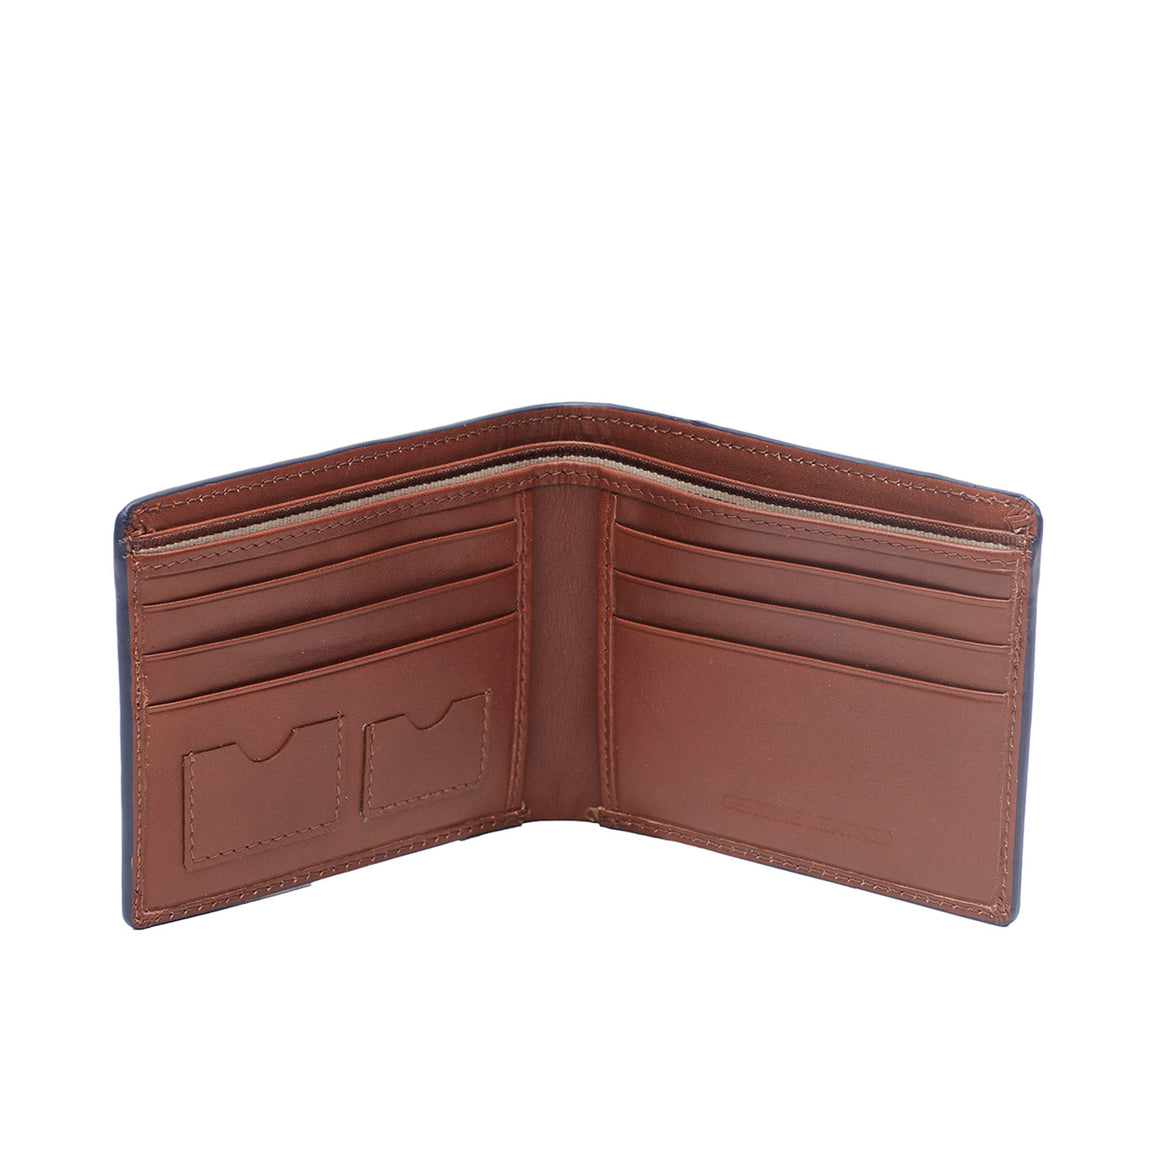 WT 0031 - TOHL BARONA MEN'S WALLET - VINTAGE TAN